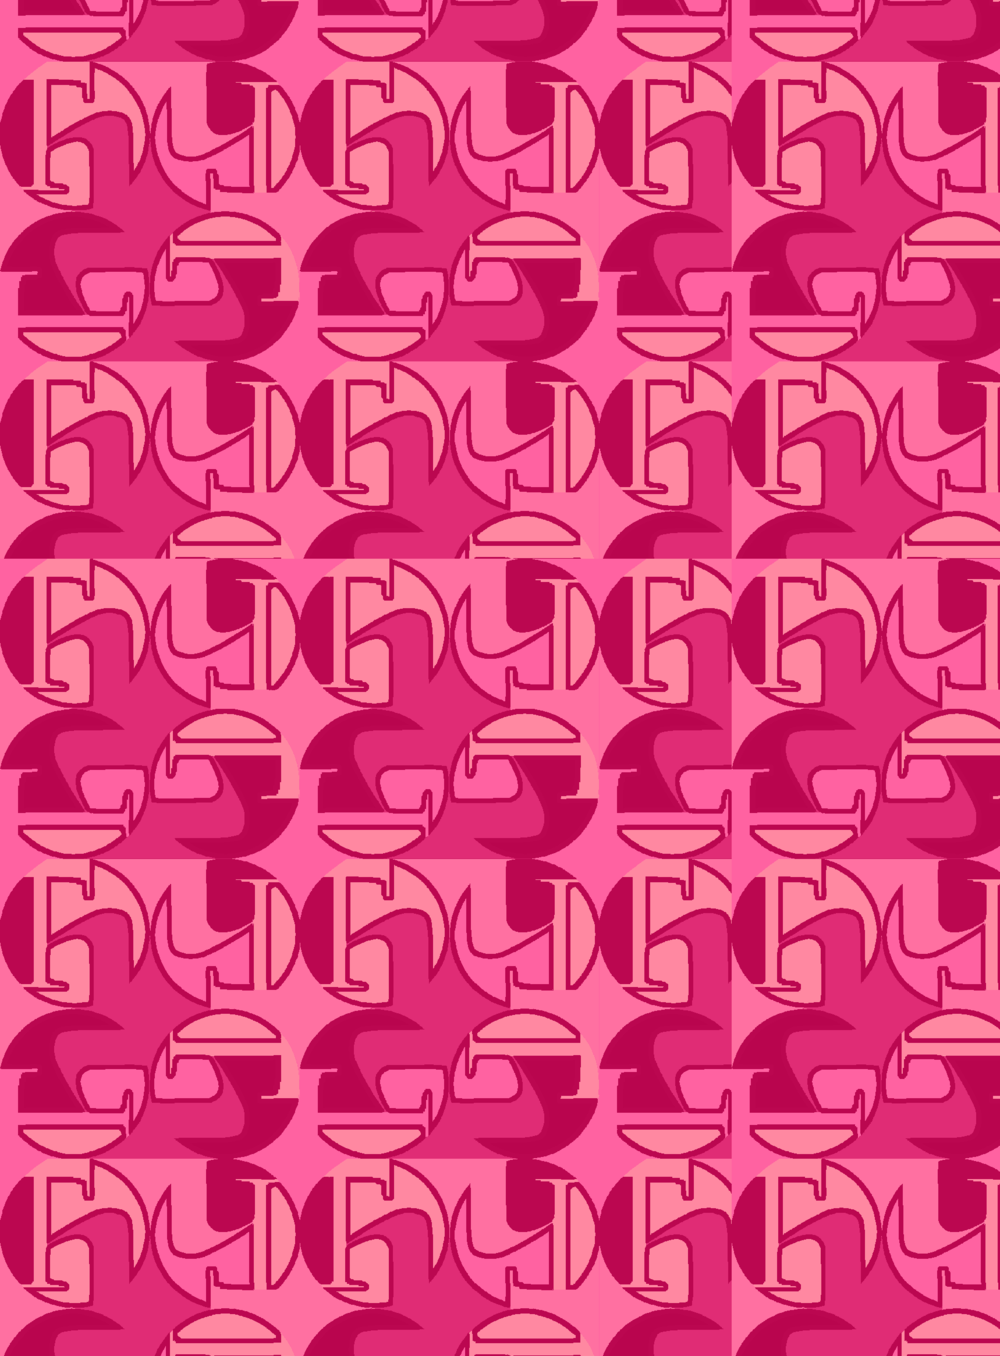 10. IconPrintPink.png